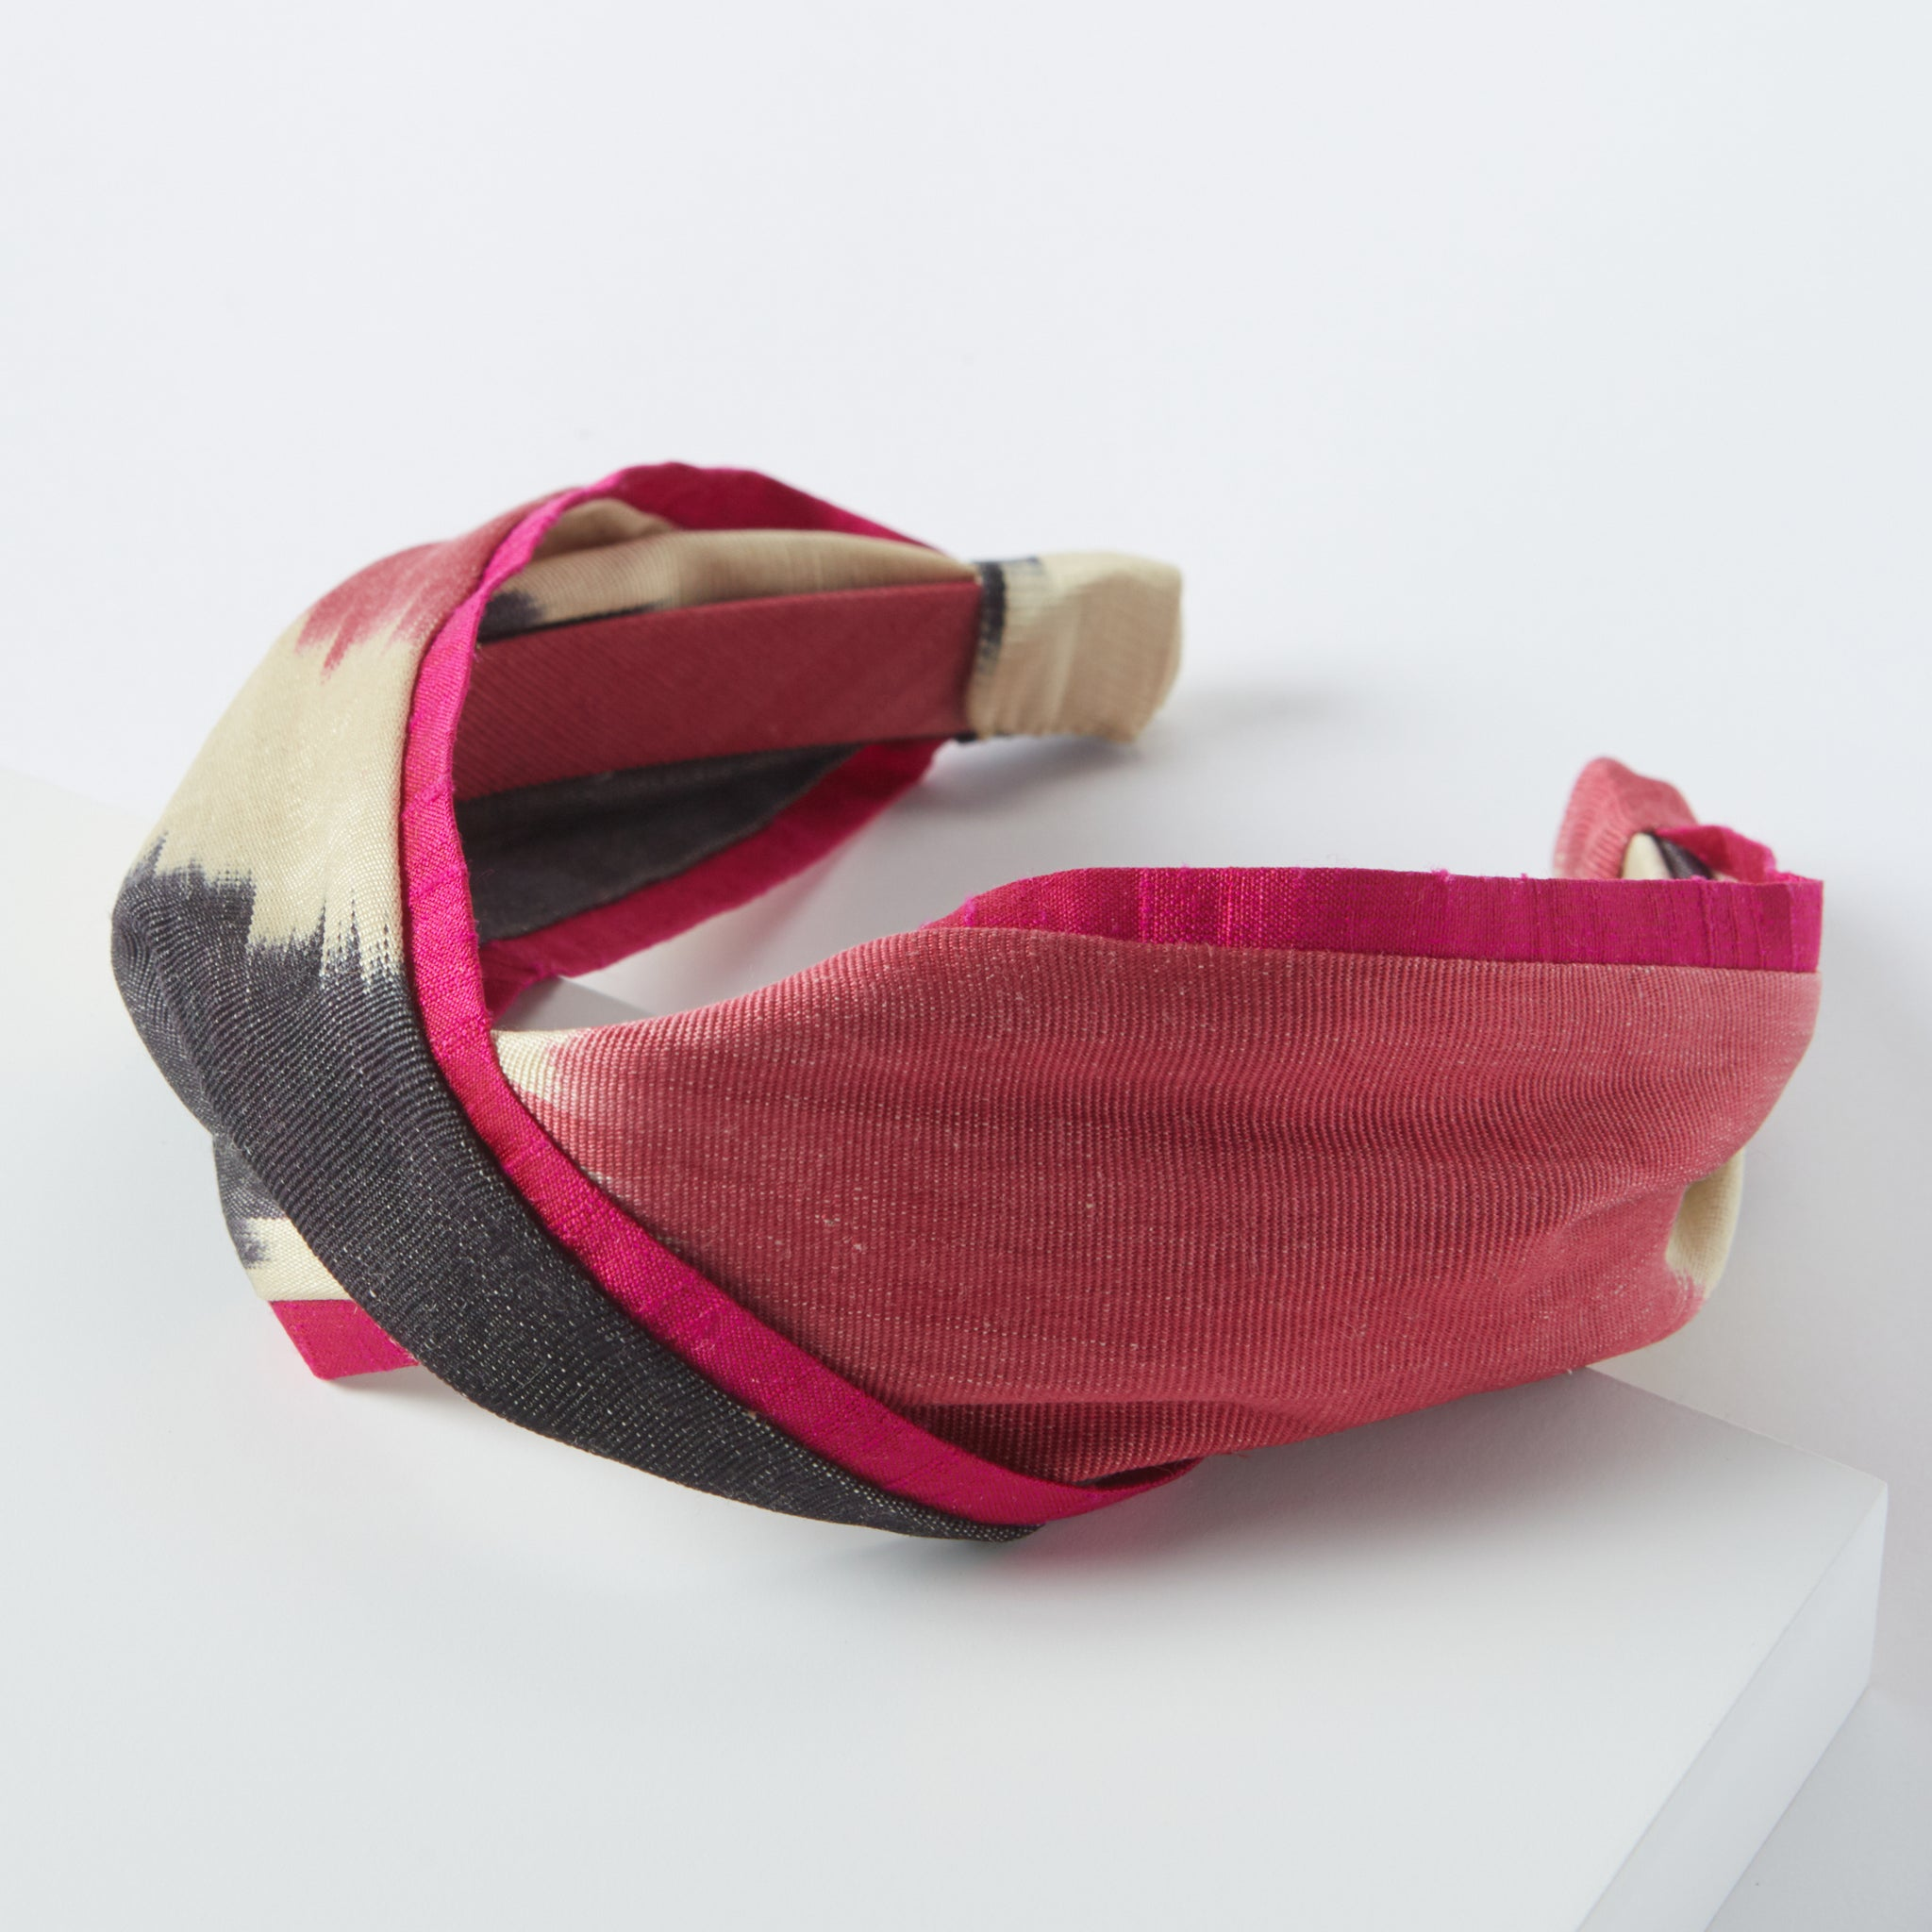 raspberry ella headband - maas by slightly east